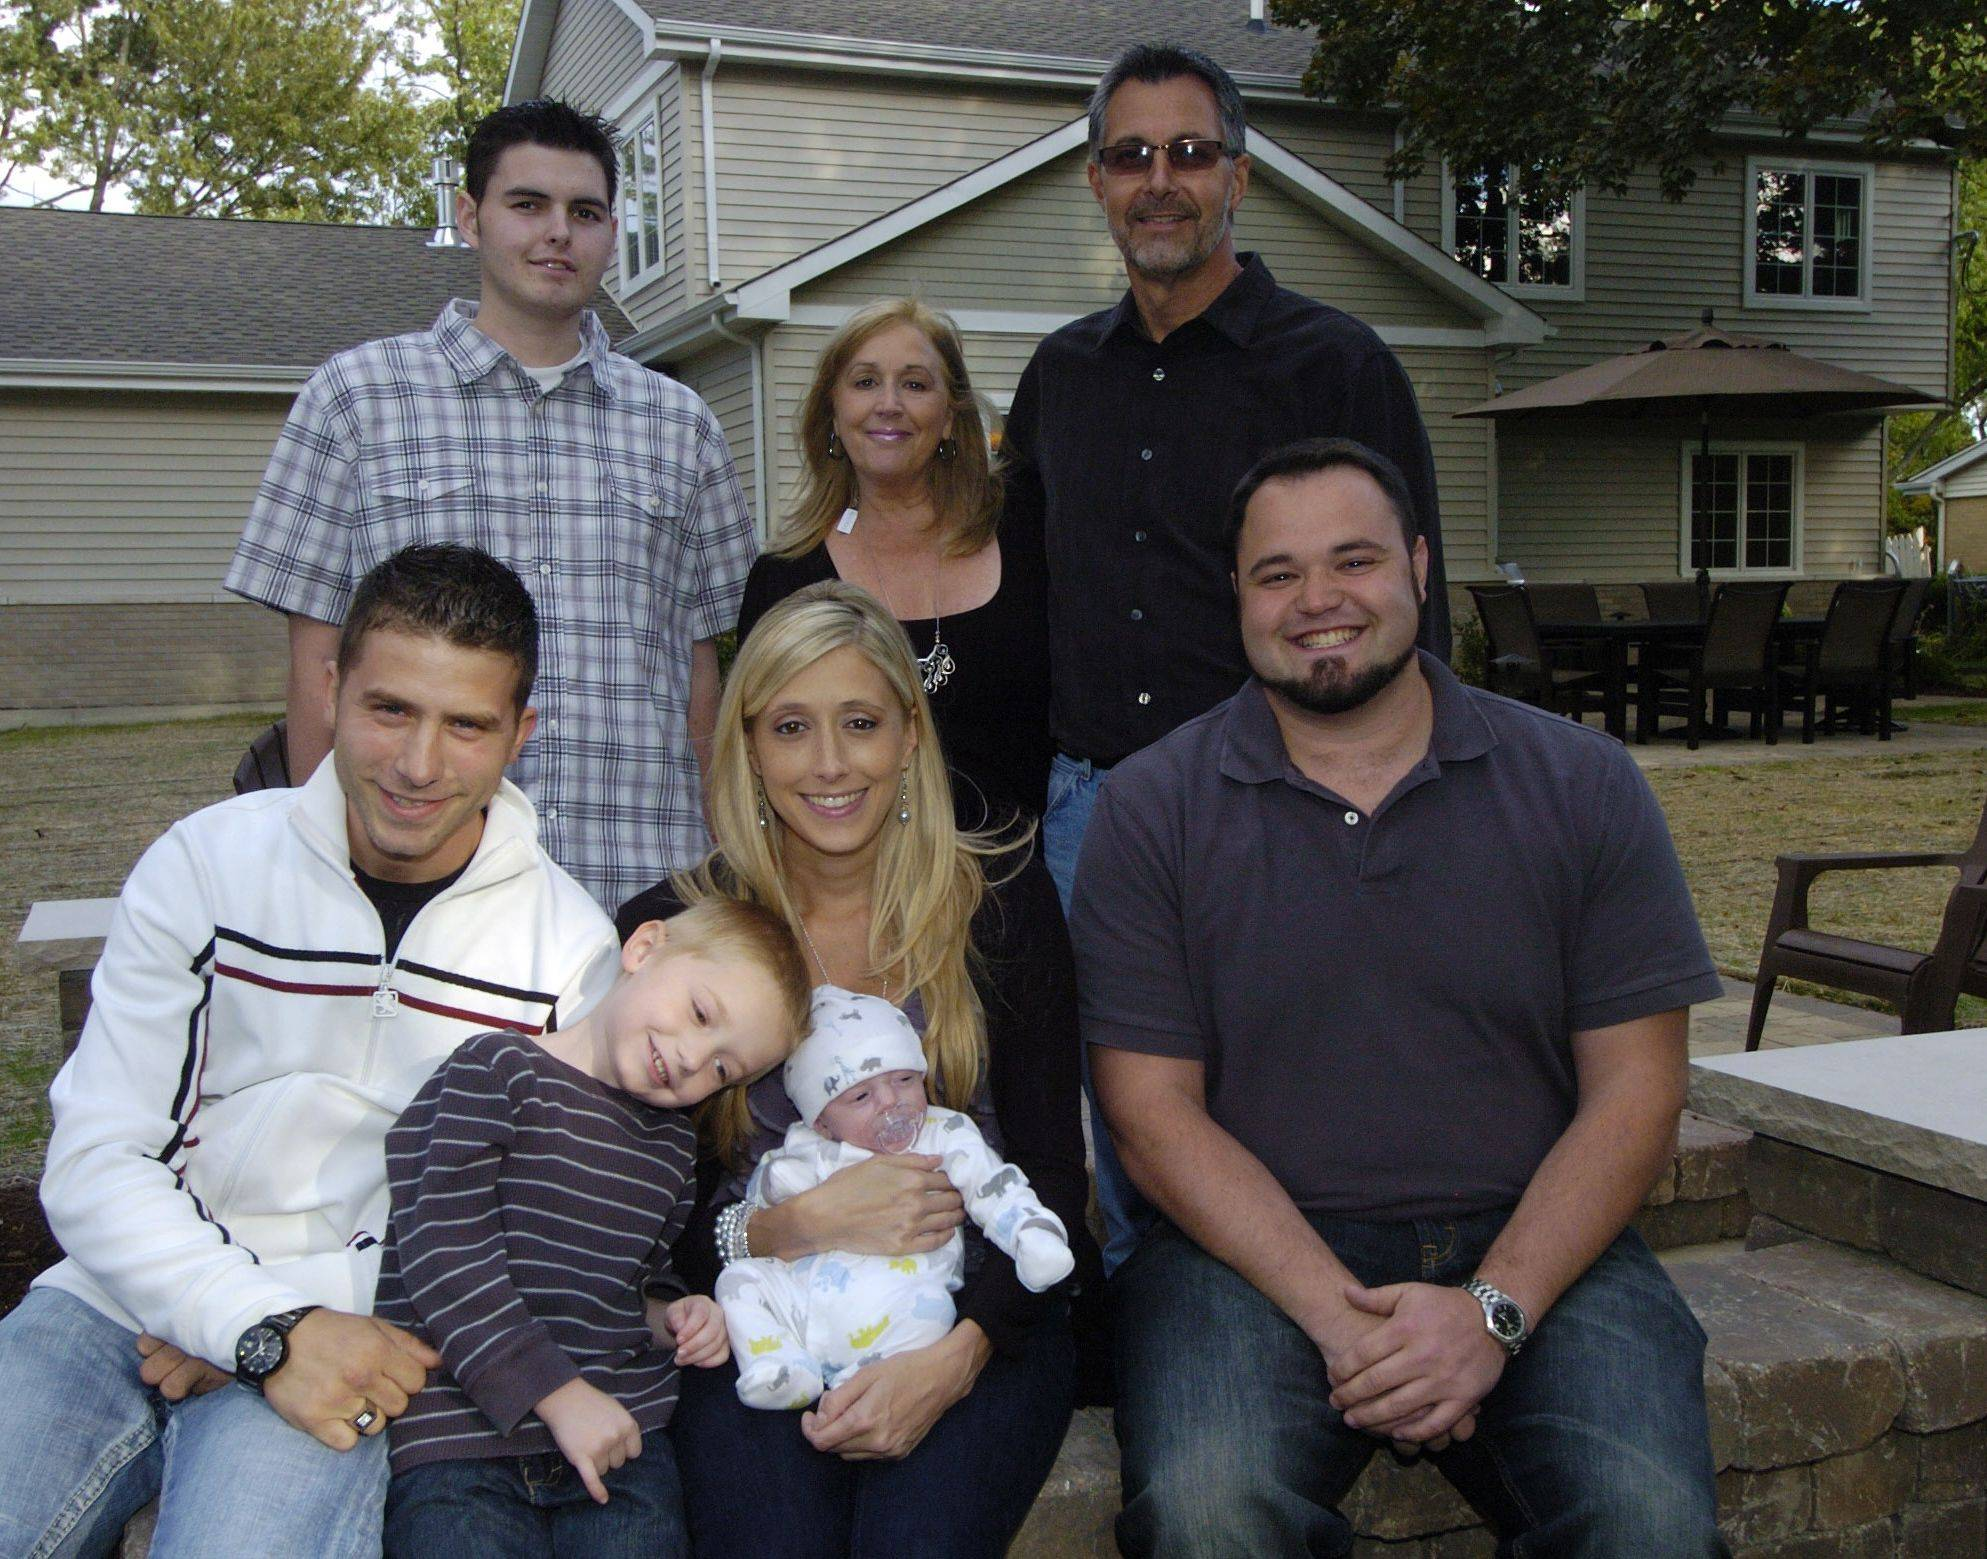 The Zeecks have a full house these days. Front row, left to right, Thomas Walrod and Michelle Zeeck and their sons, Vincent and Dominic, and Michelle's brother, Mike Zeeck. Back row, John Zeeck with his parents, Sharon and Harry Zeeck.